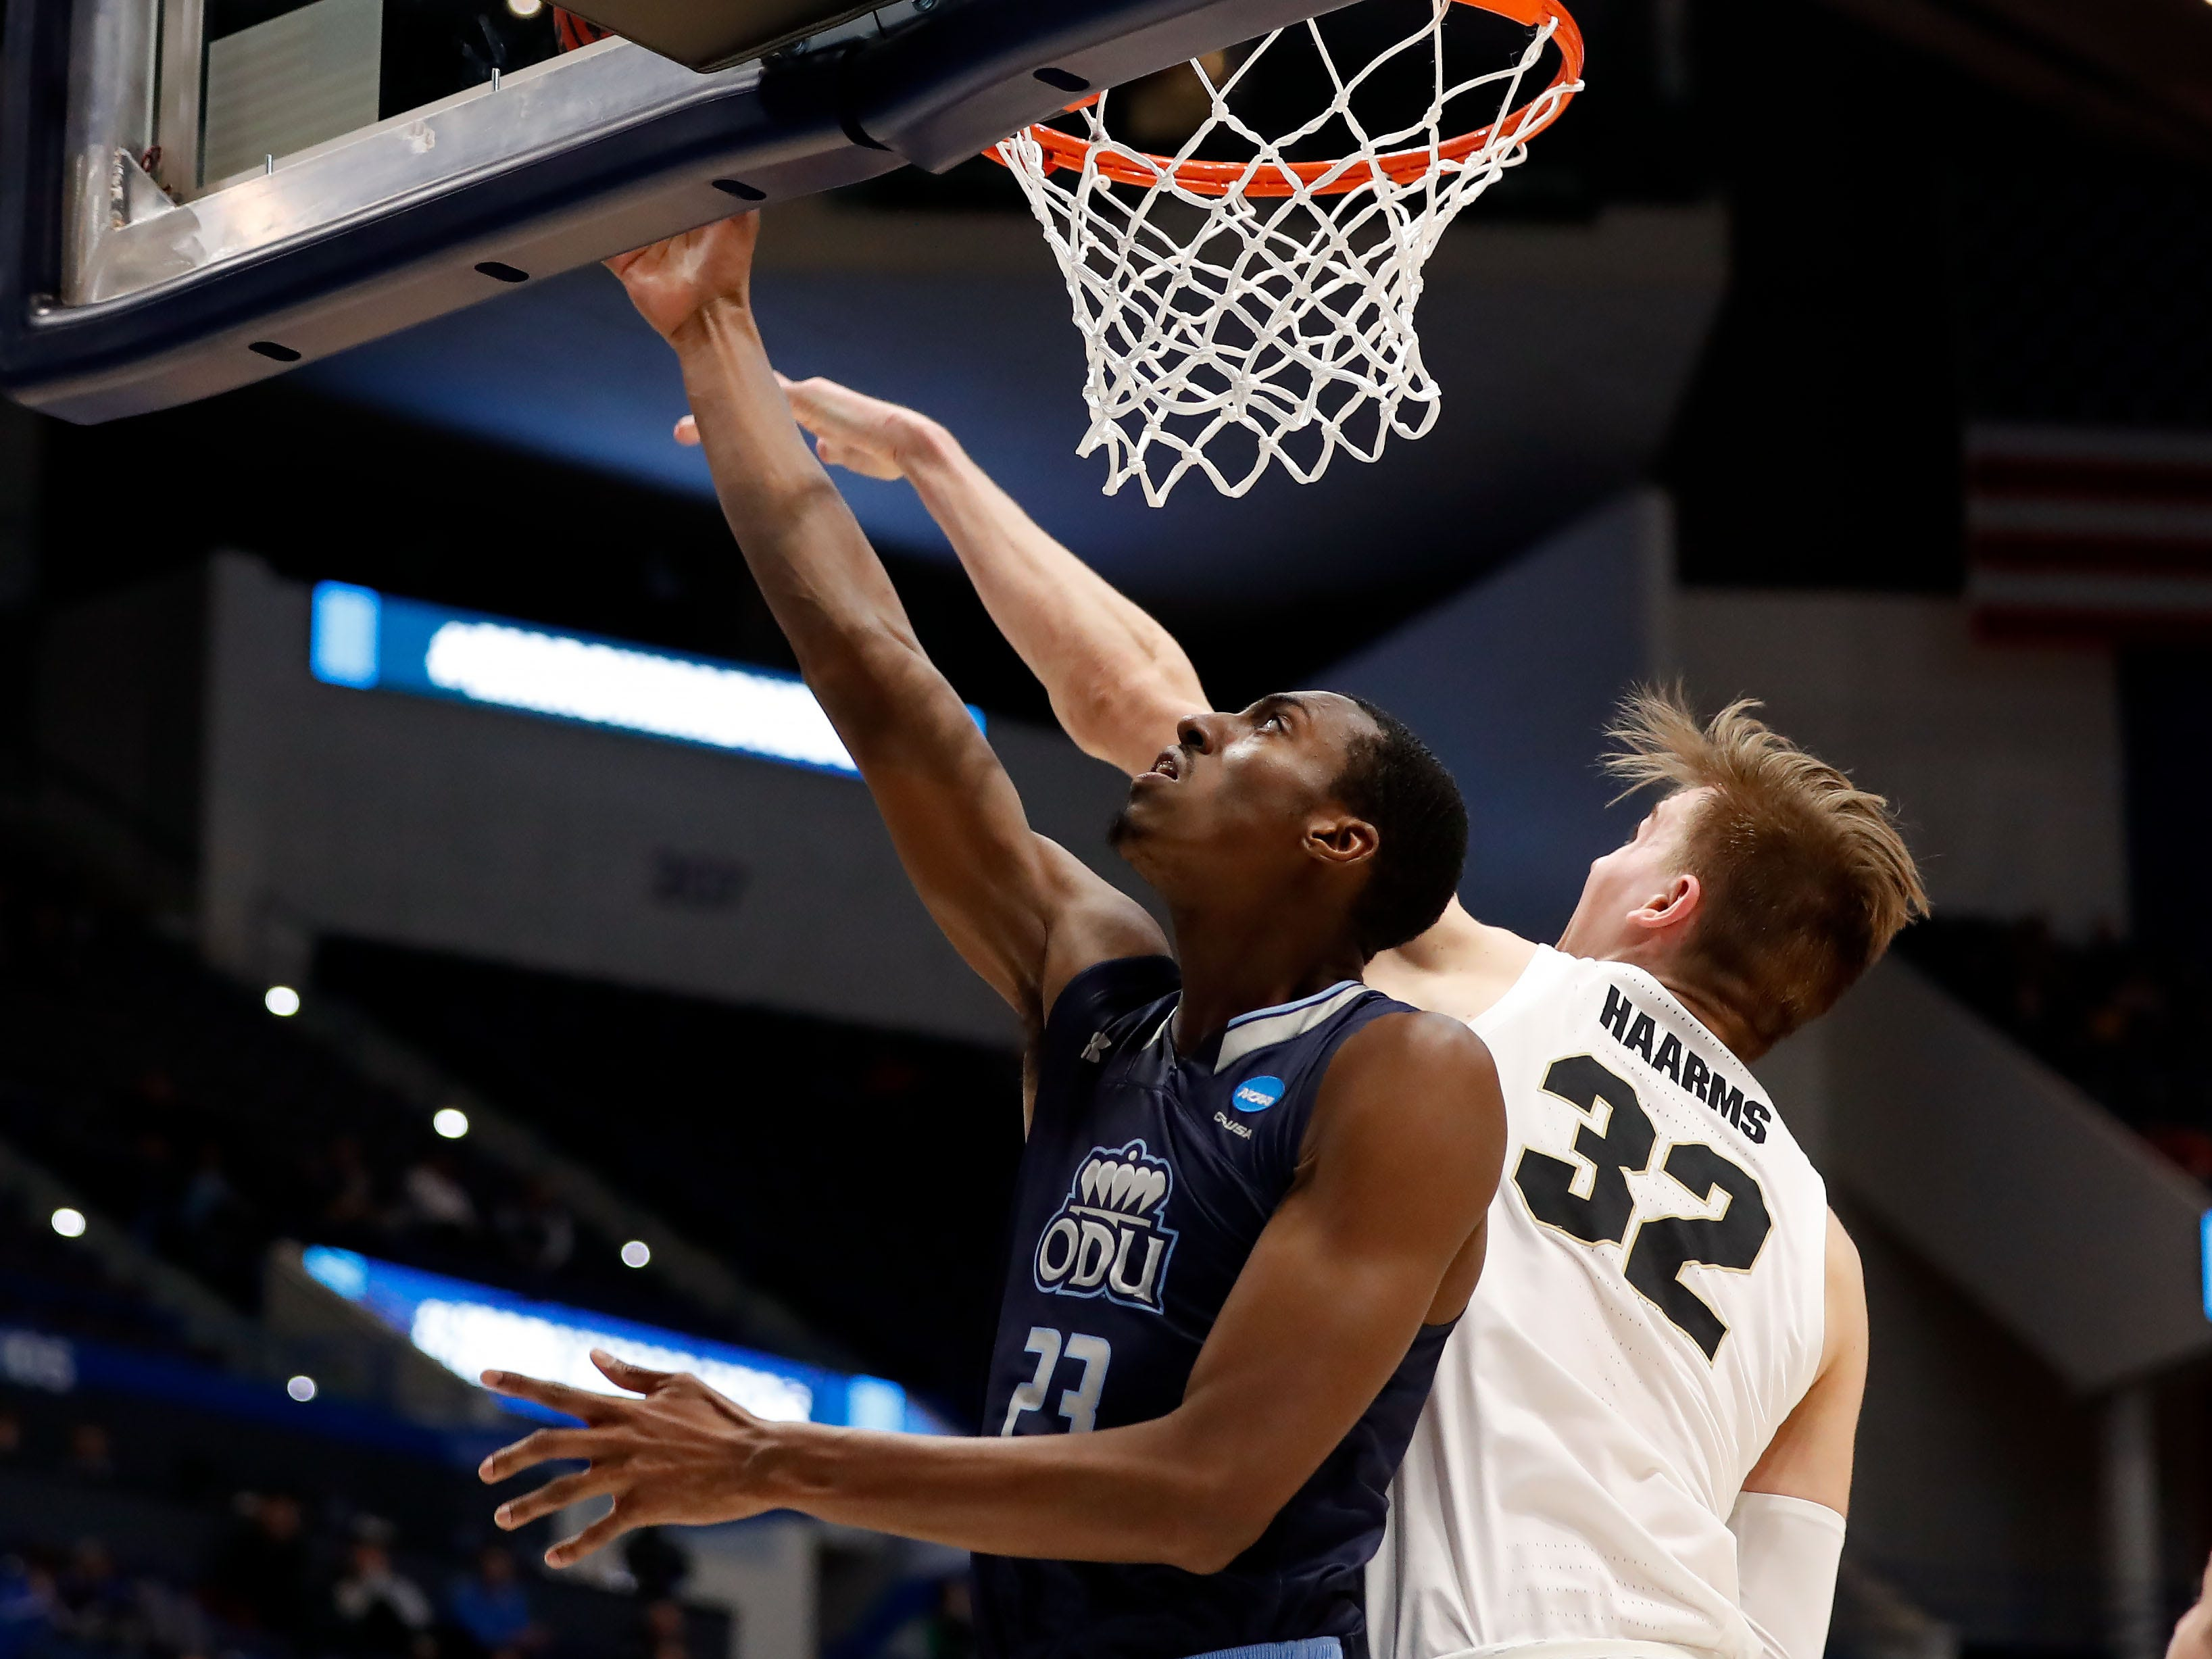 Mar 21, 2019; Hartford, CT, USA; Purdue Boilermakers center Matt Haarms (32) blocks a shot from Old Dominion Monarchs forward Dajour Dickens (23) during the second half of a game in the first round of the 2019 NCAA Tournament at XL Center. Mandatory Credit: David Butler II-USA TODAY Sports